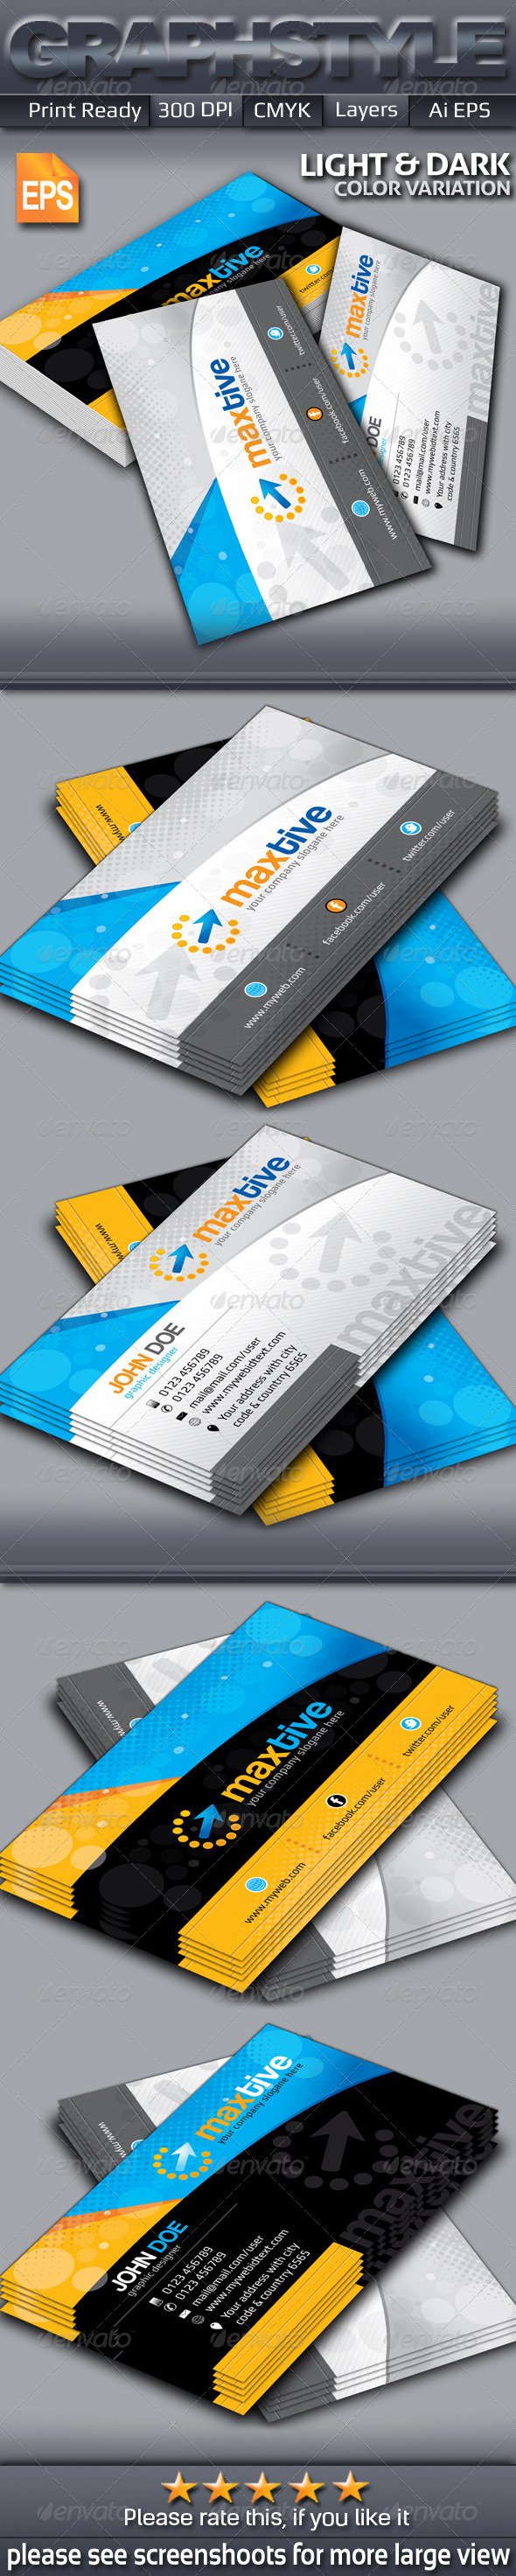 GraphicRiver Maxtive Creative Business Card 6400041